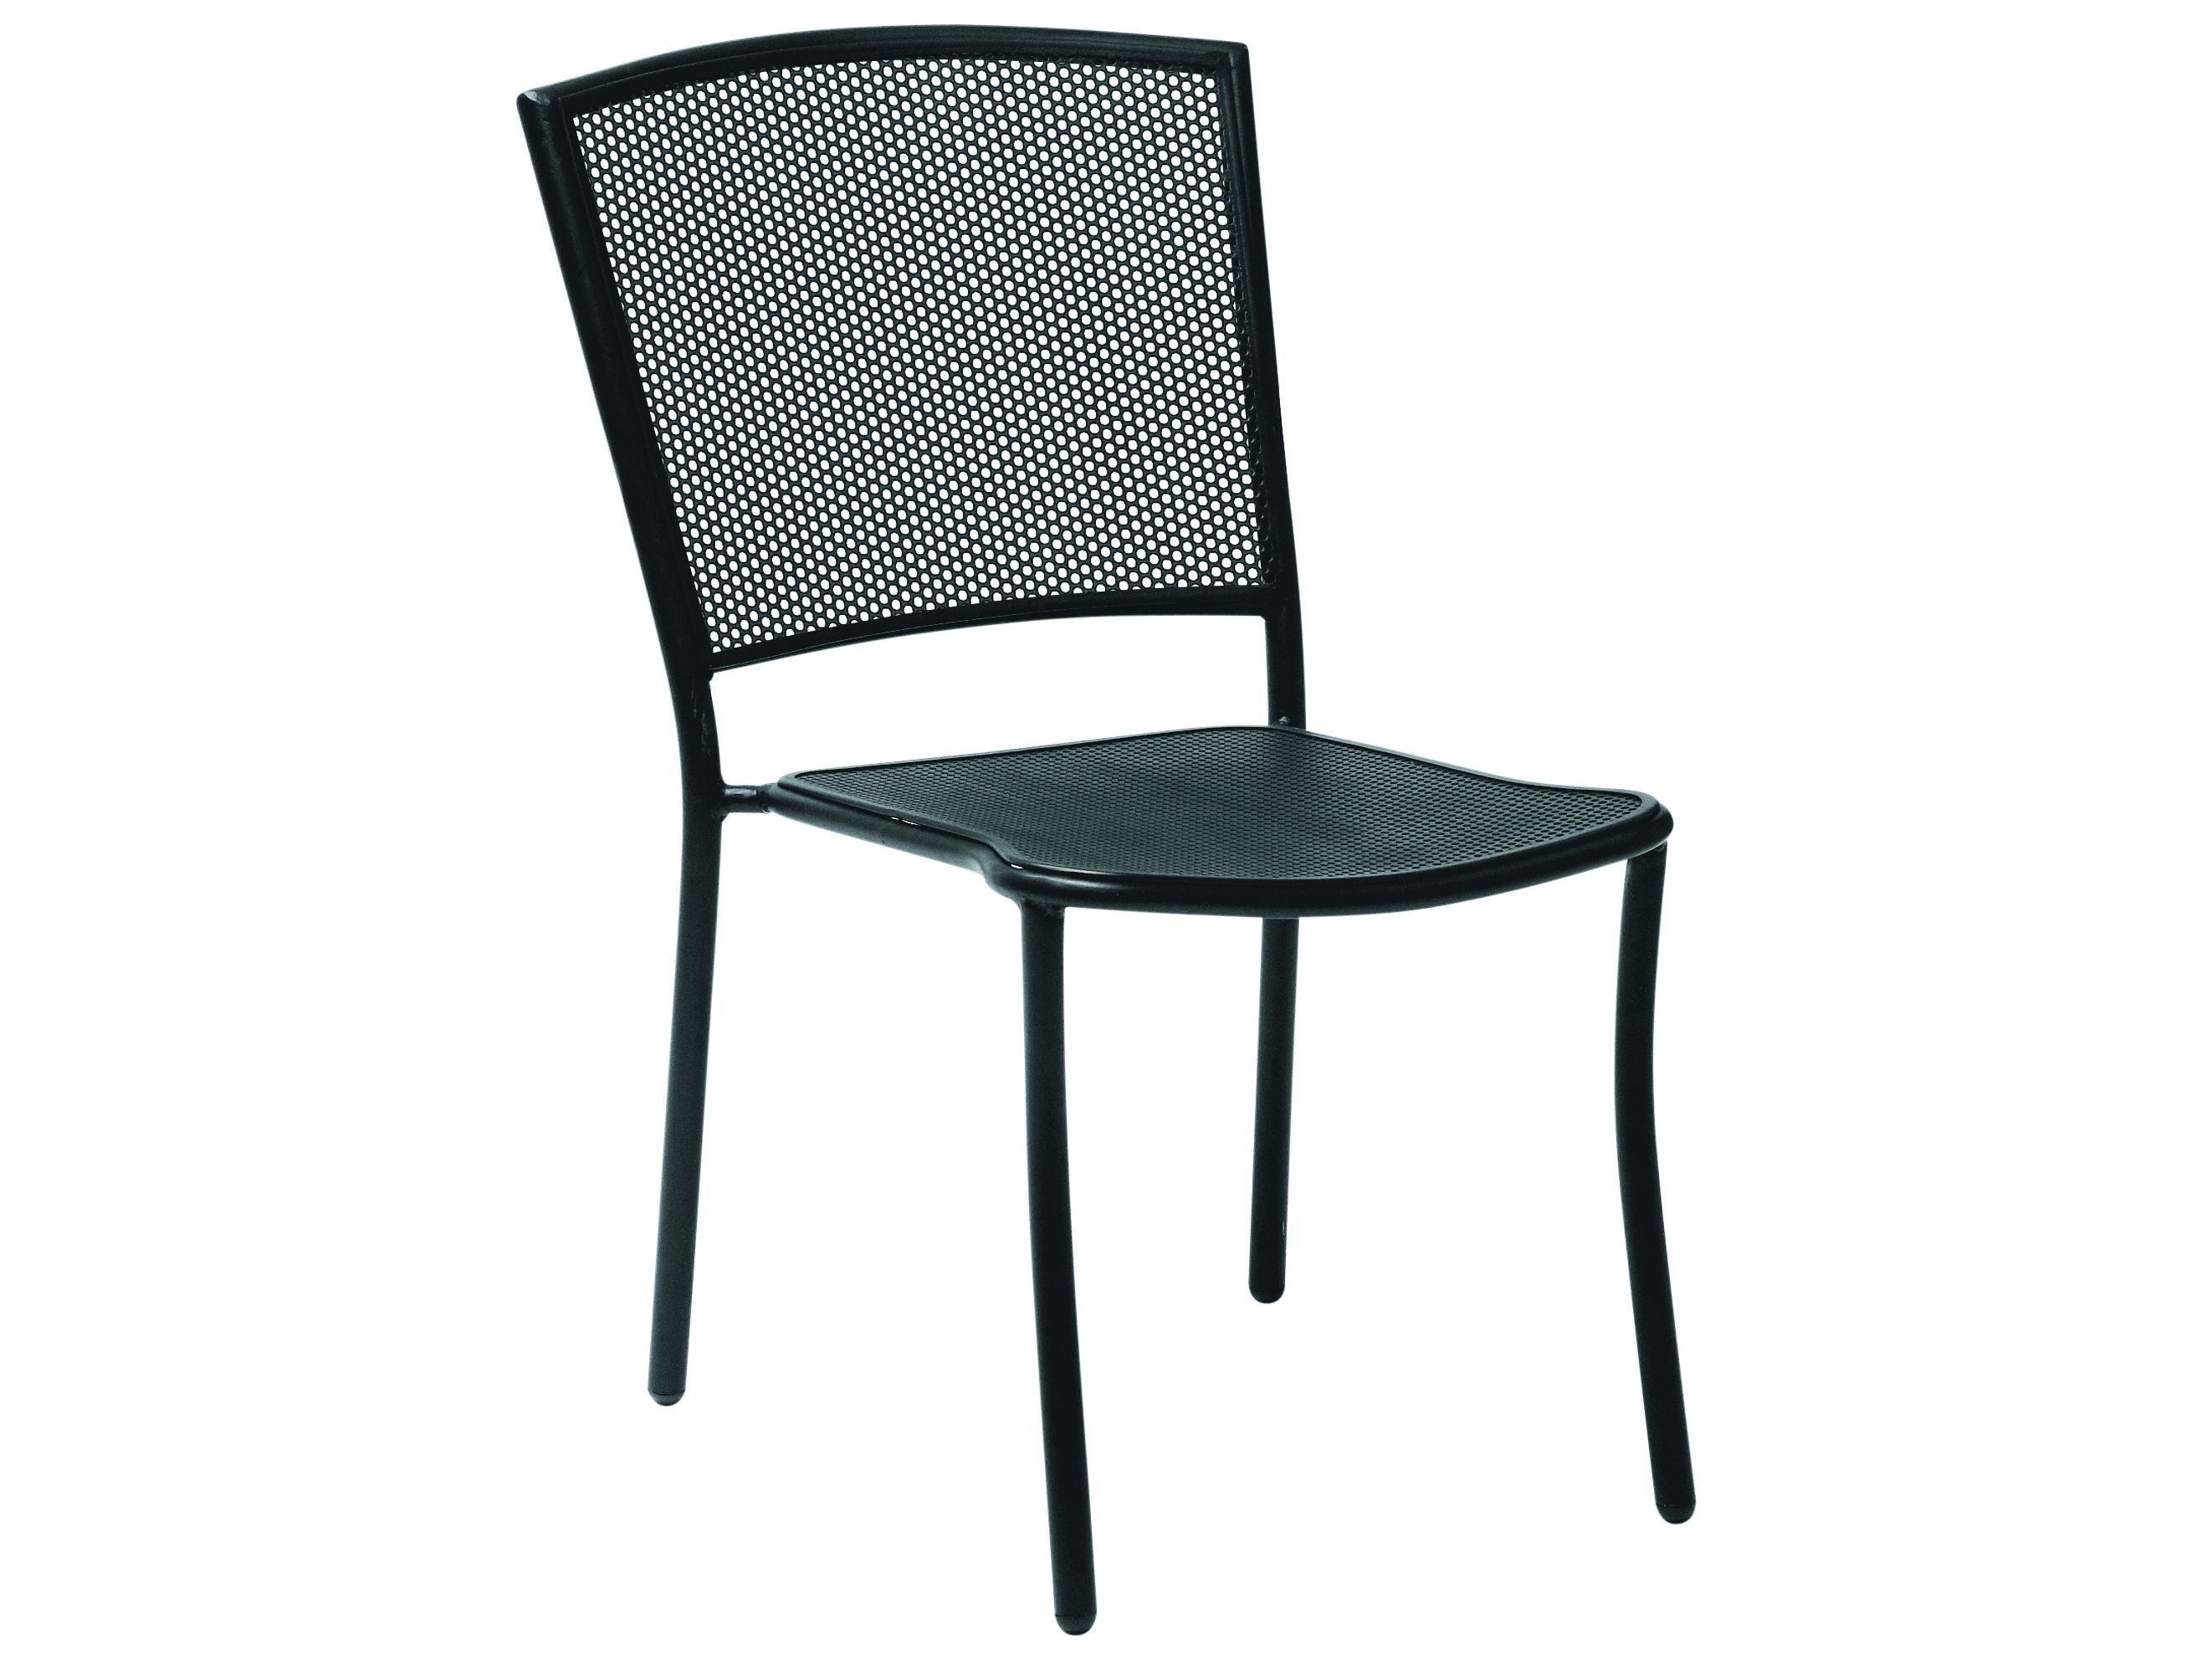 Black Metal Patio Chairs Woodard Albion Wrought Iron Dining Chair In Textured Black